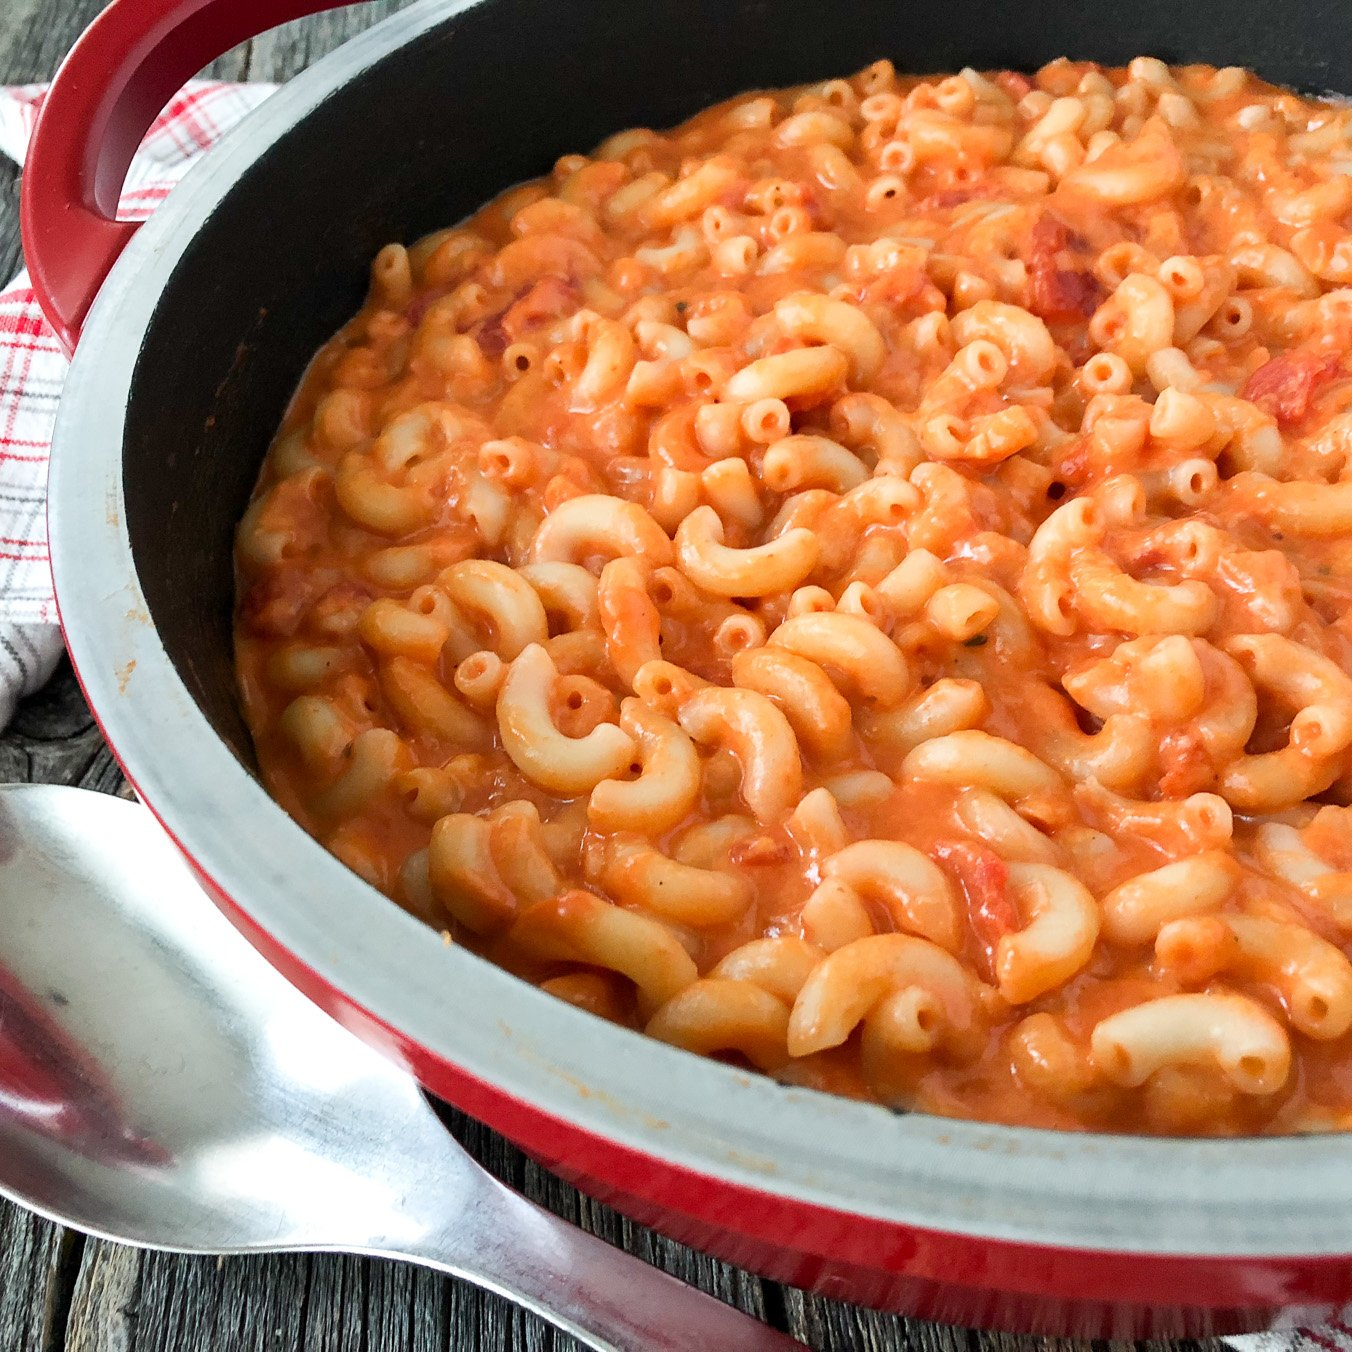 Creamy Tomato Macaroni and Cheese